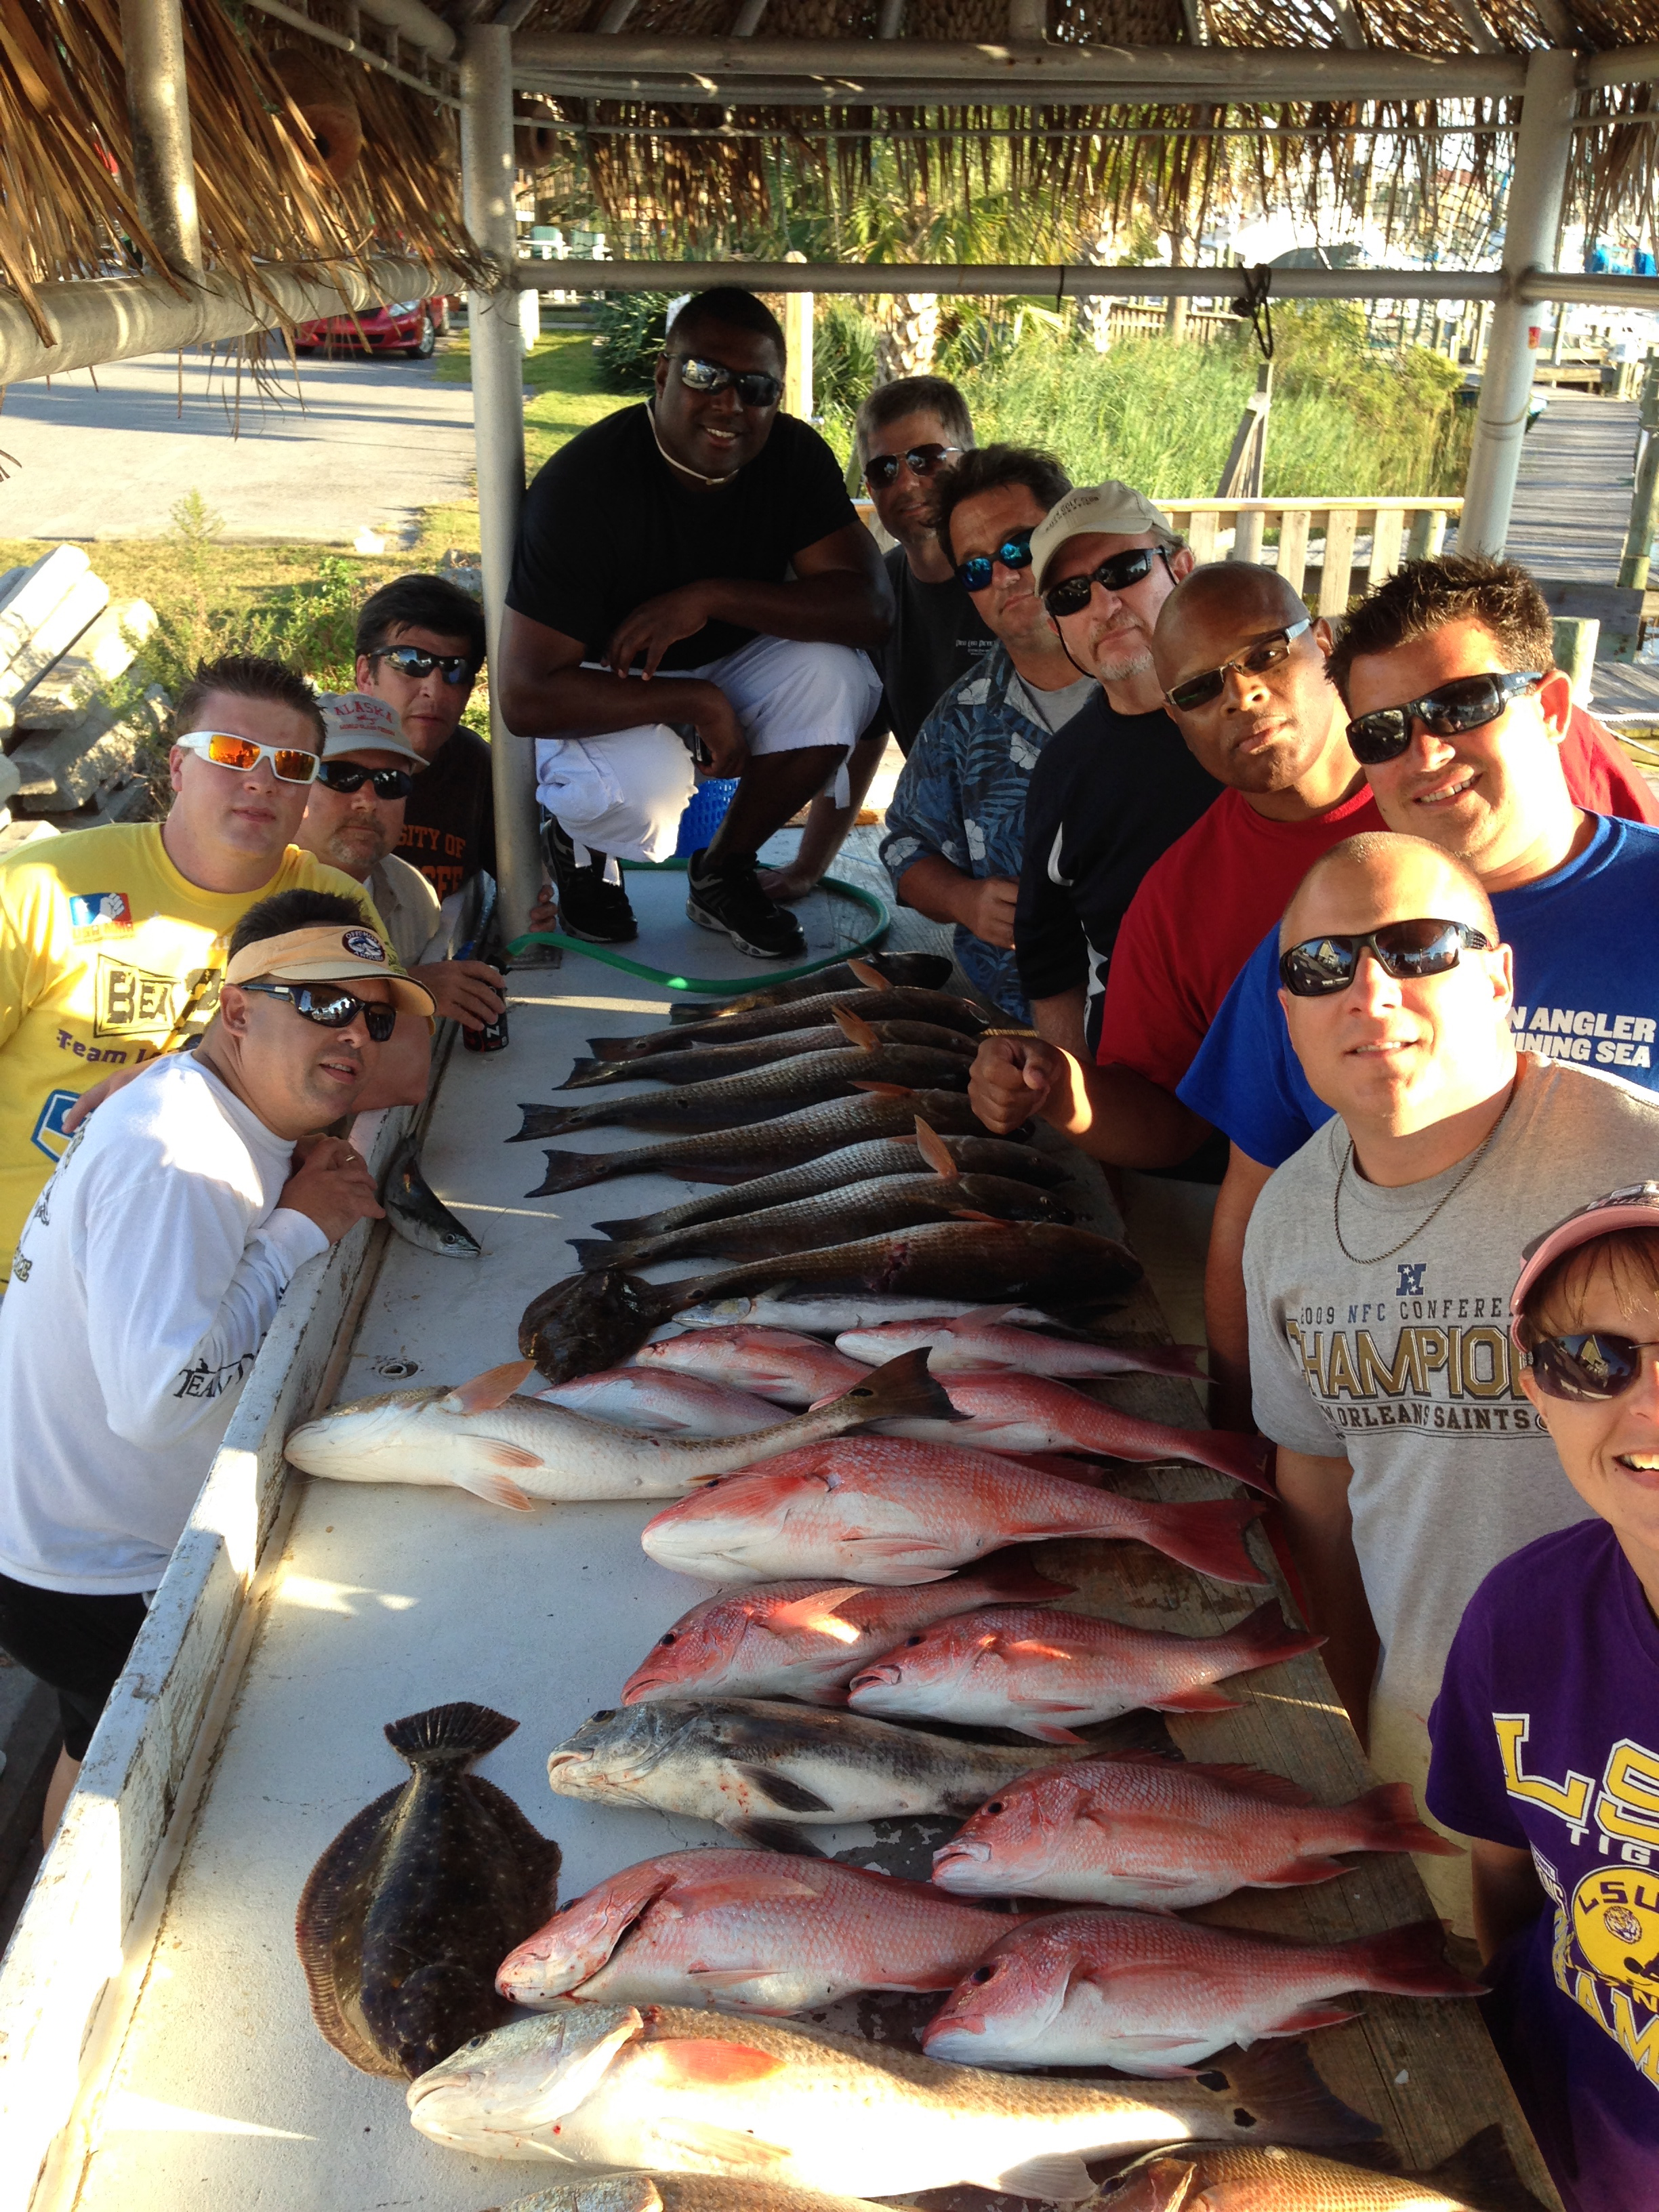 We offer muiltple boat trips as well! No group too large, no group too small!